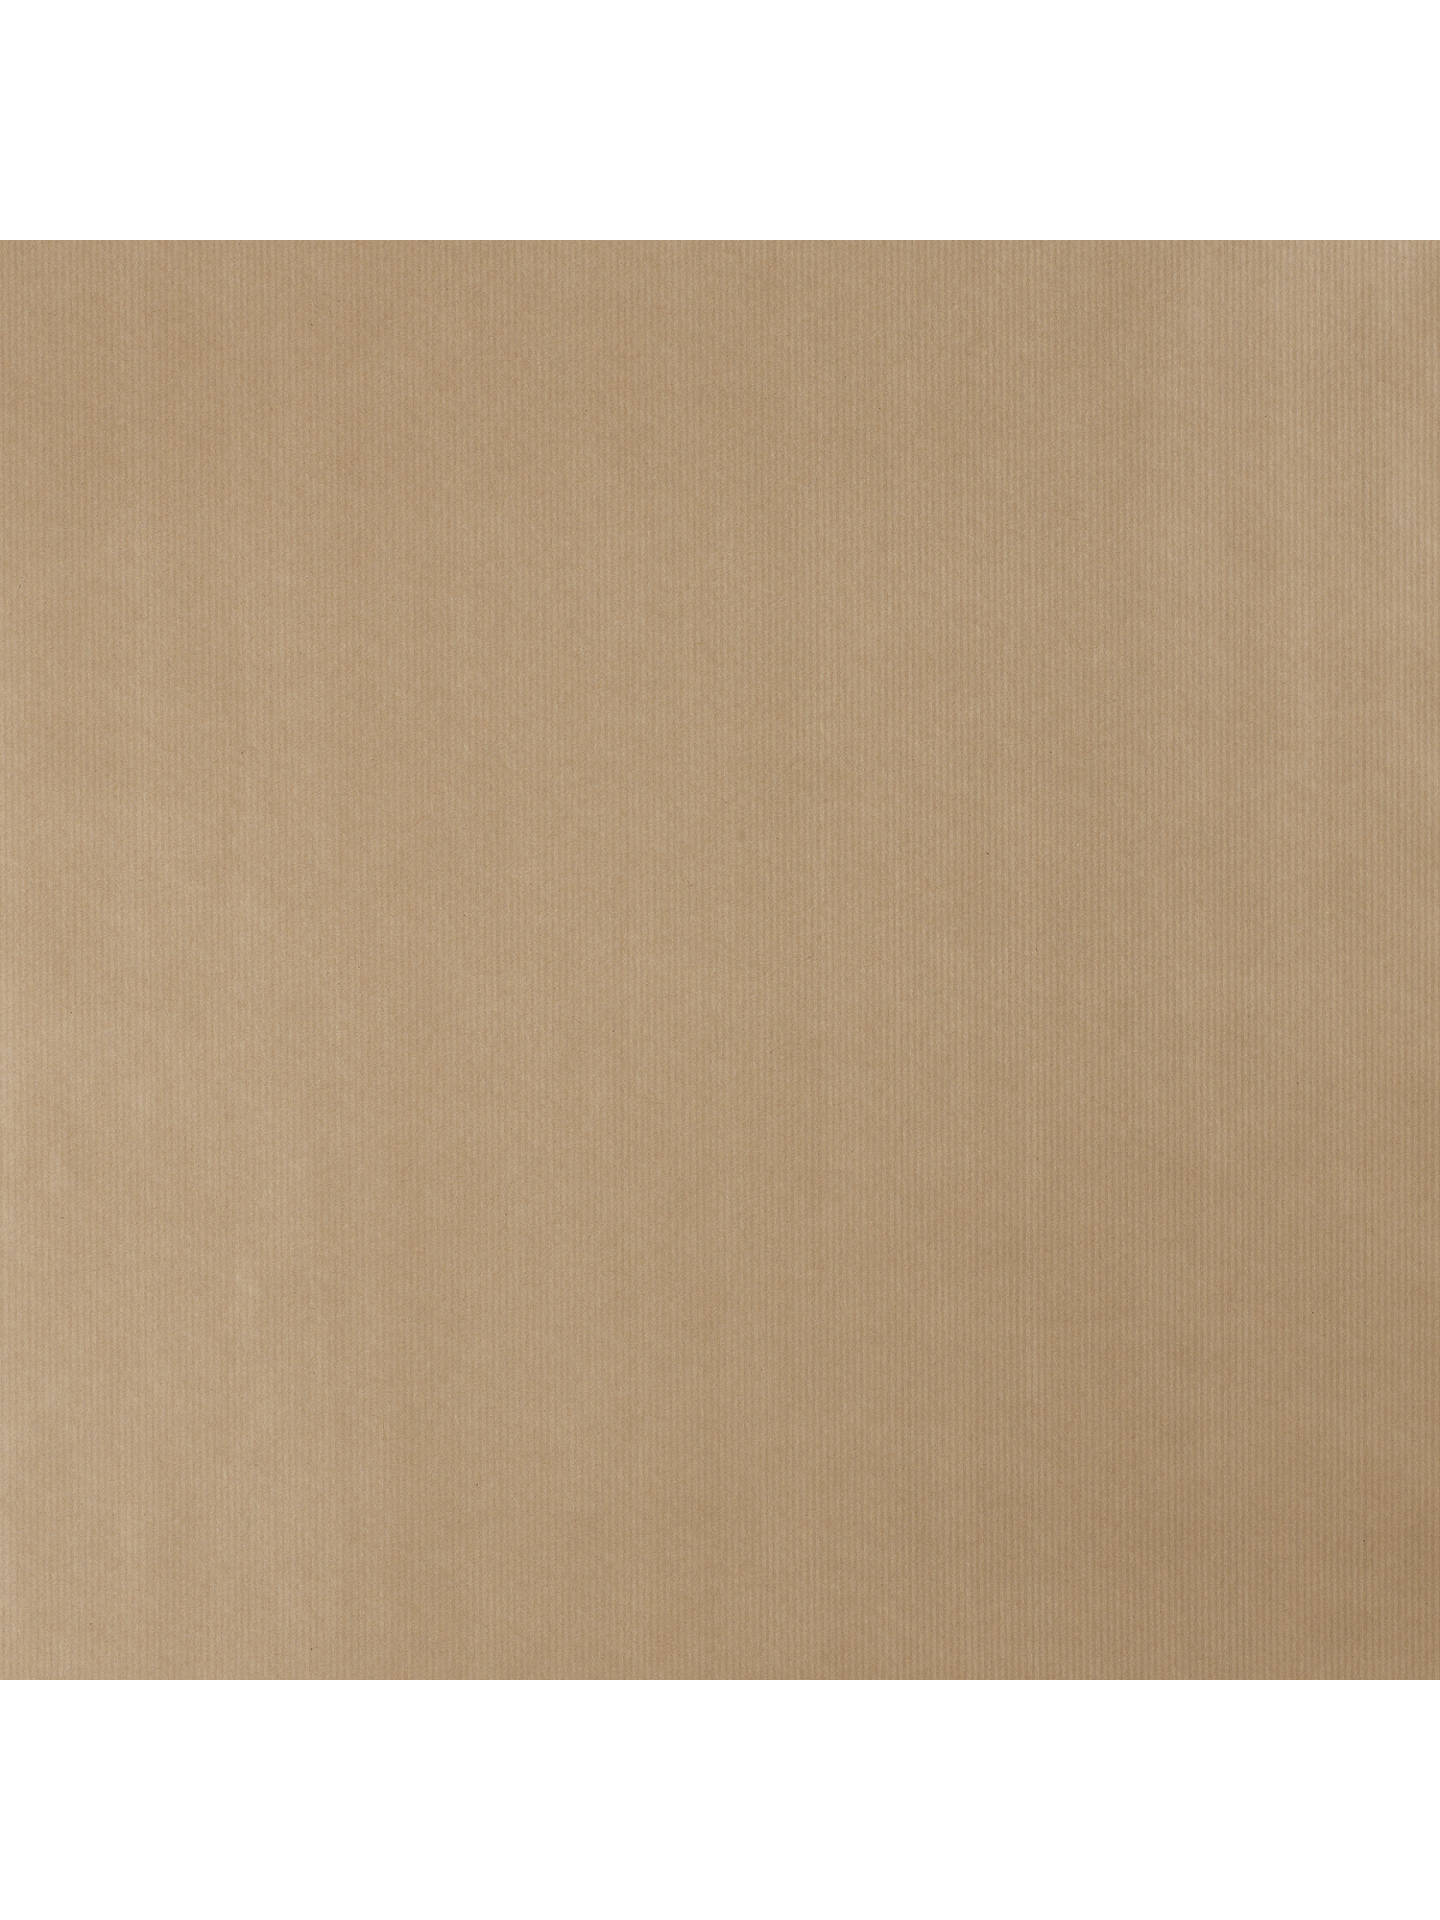 Buy John Lewis & Partners Wrapping Kraft Paper, Brown, L10m Online at johnlewis.com